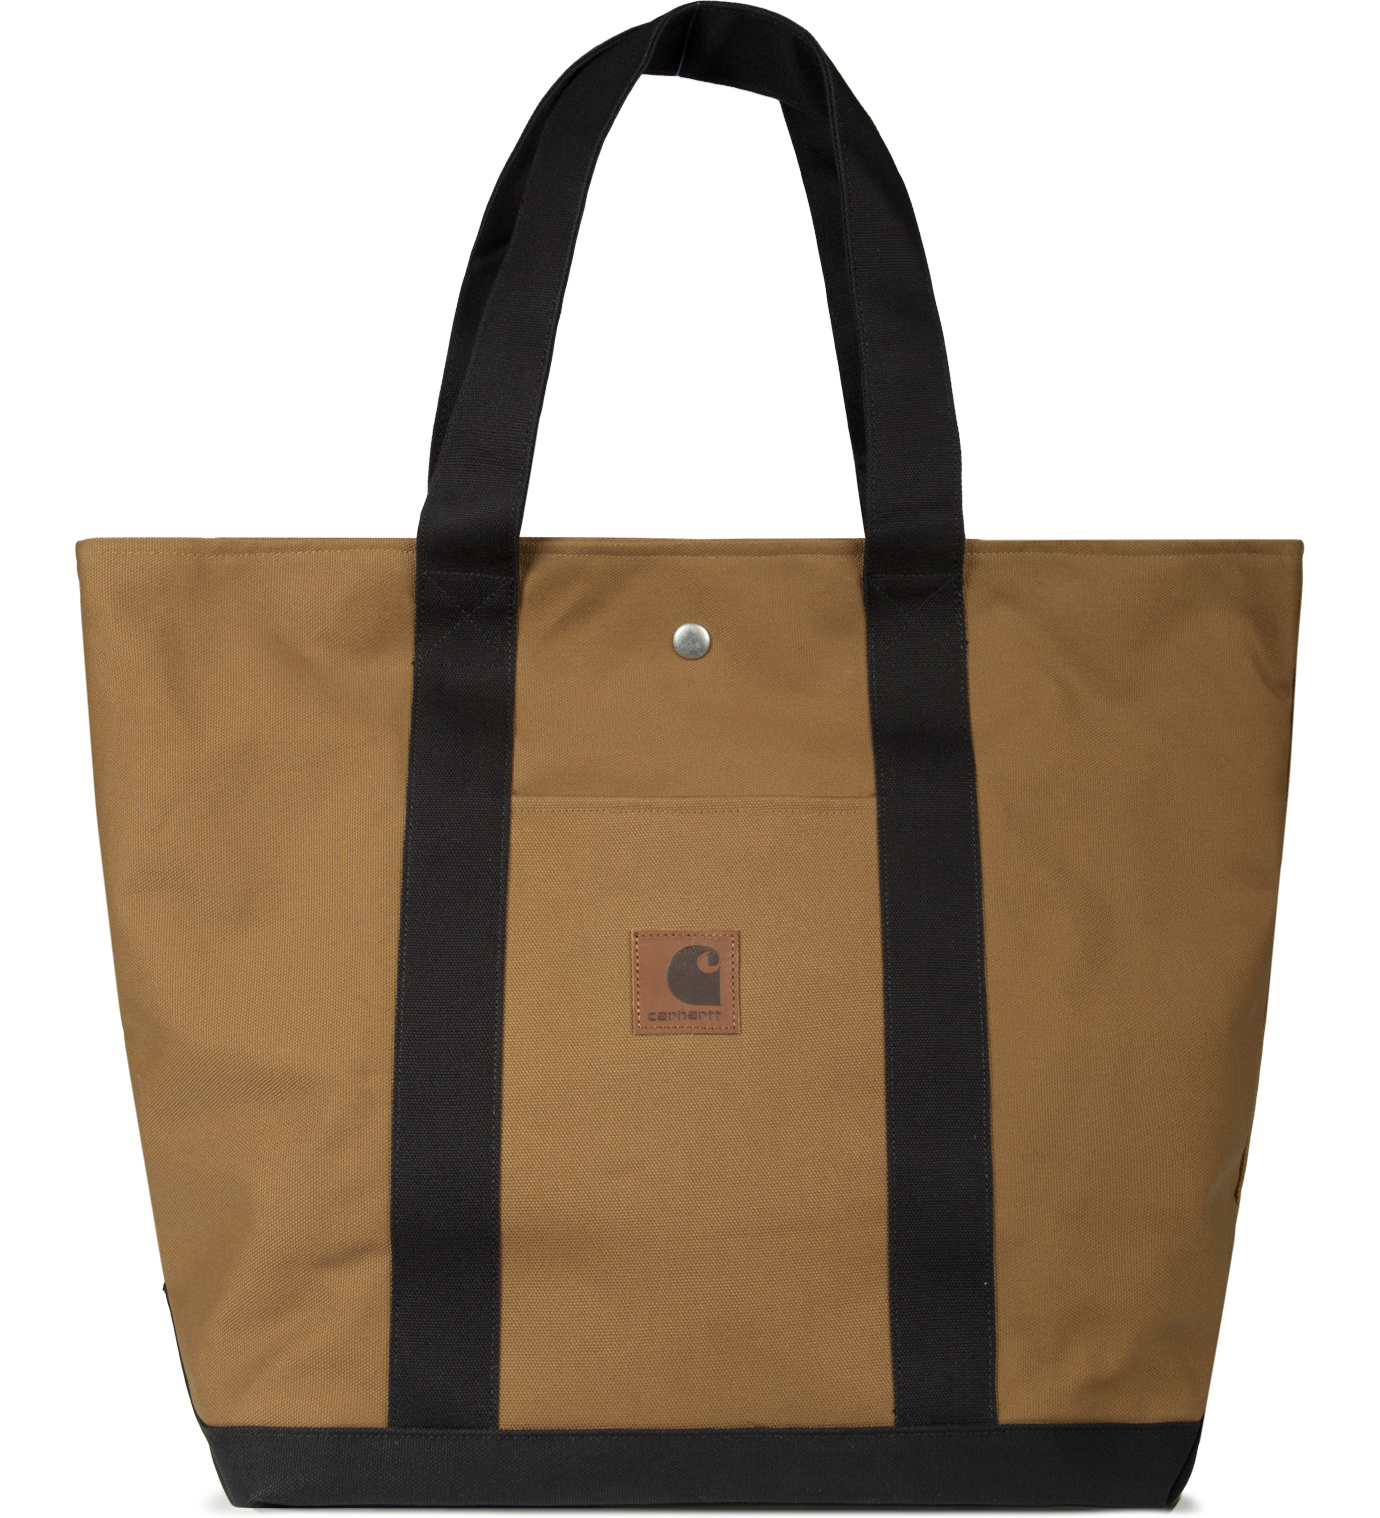 Carhartt Work In Progress Hamilton Brown/Black Simple Tote Bag